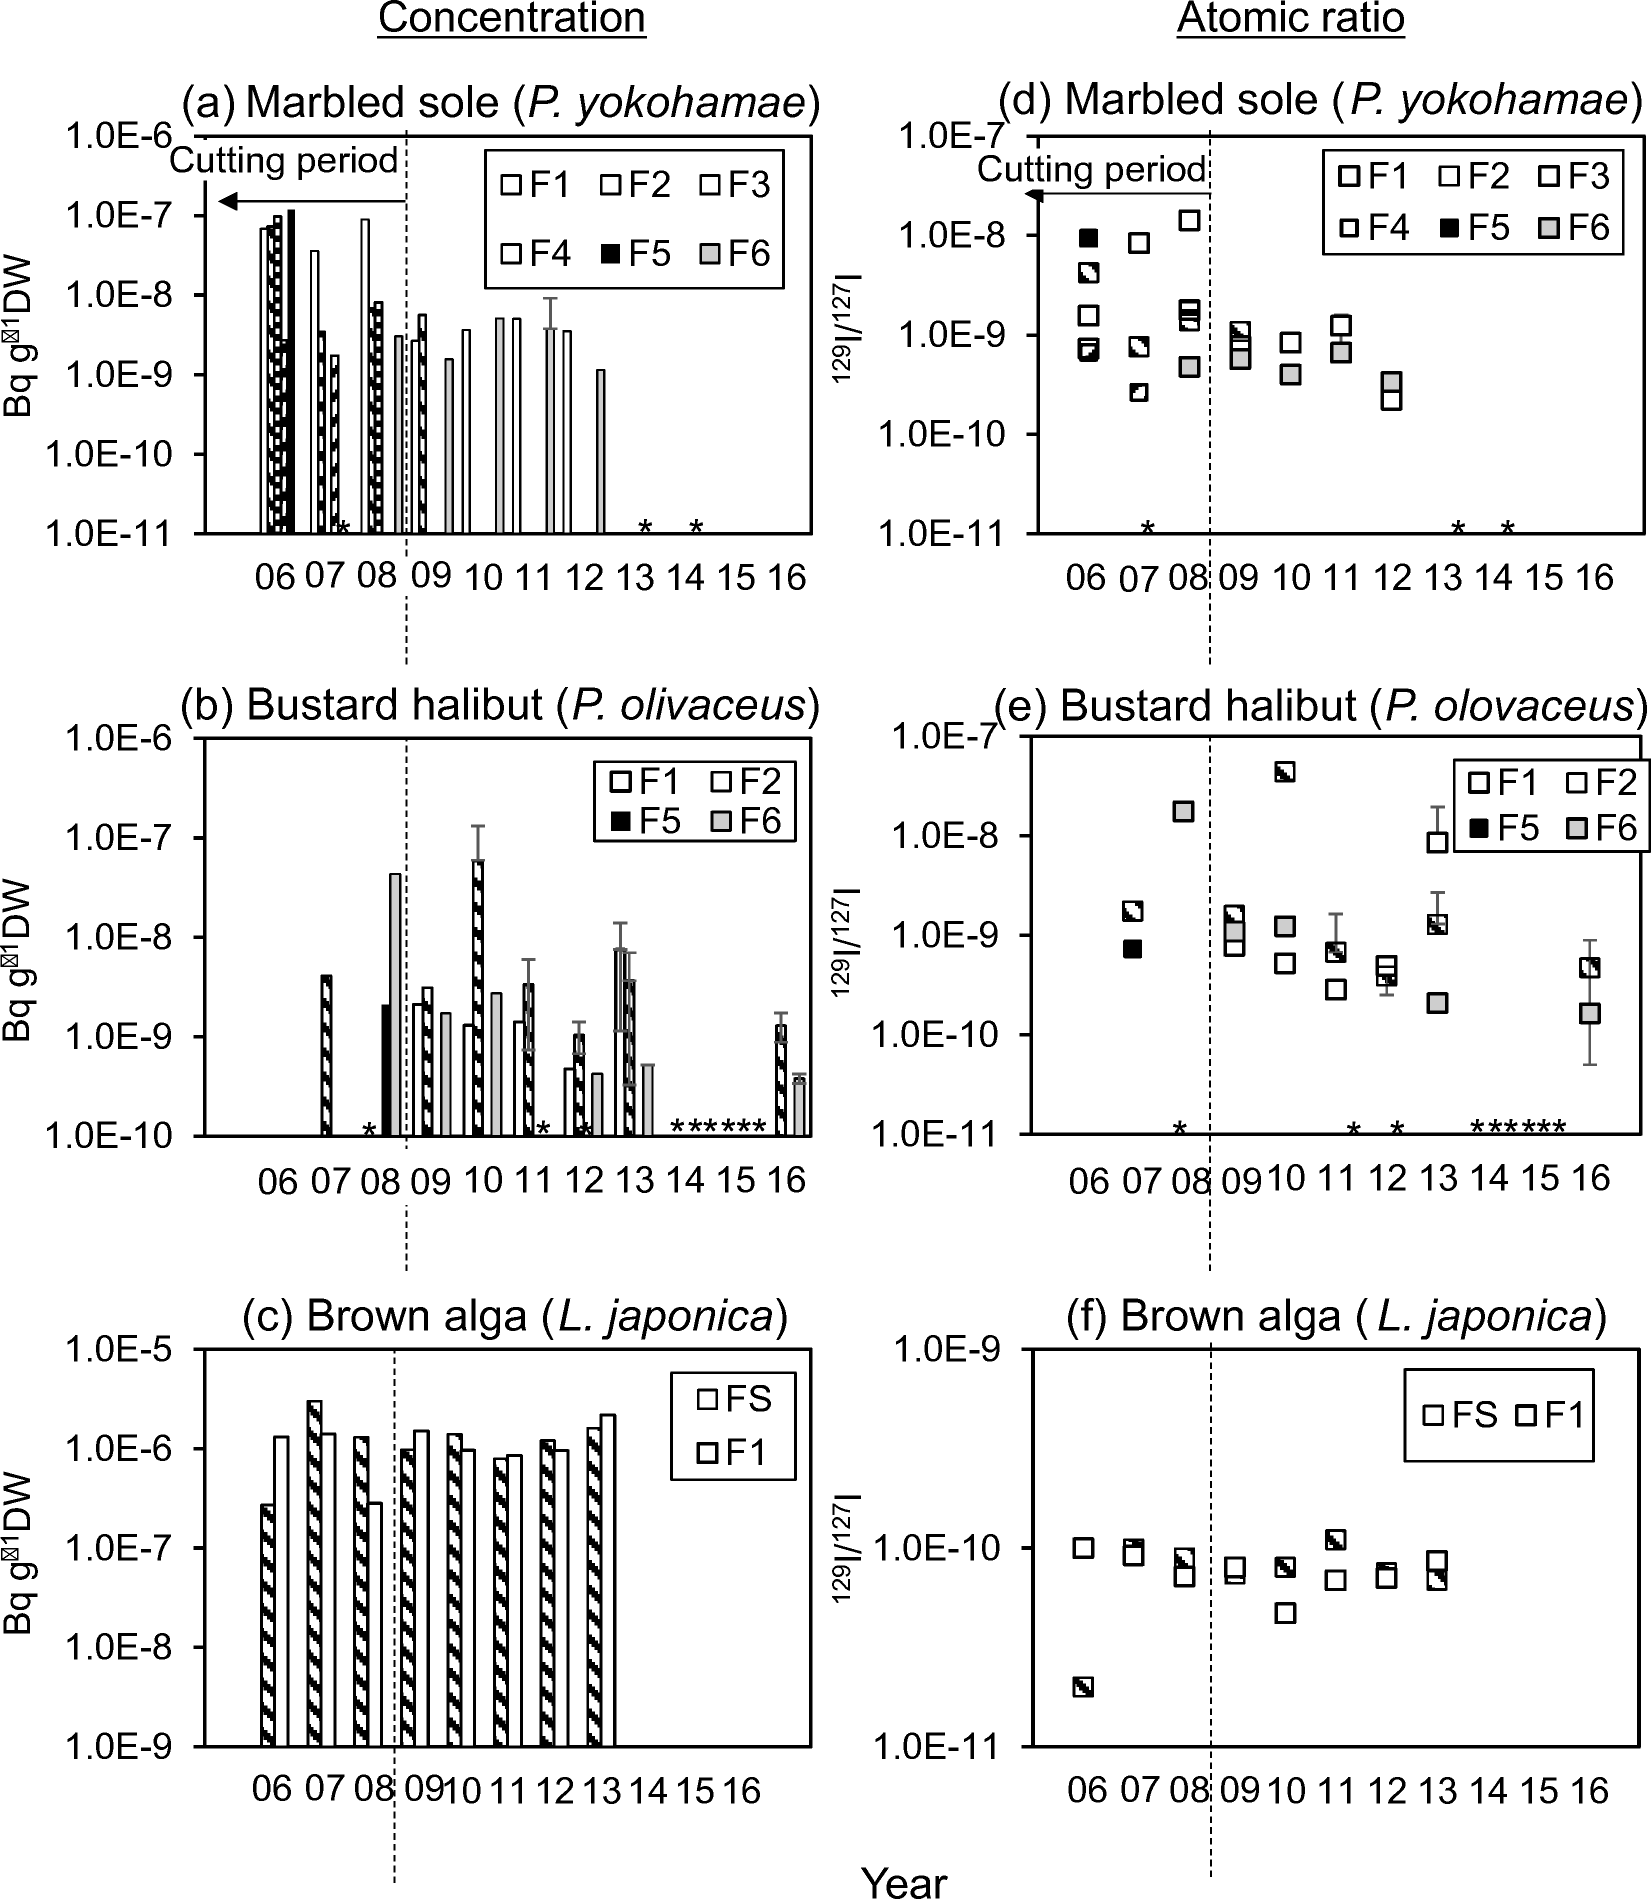 Concentrations of iodine-129 in livestock, agricultural, and